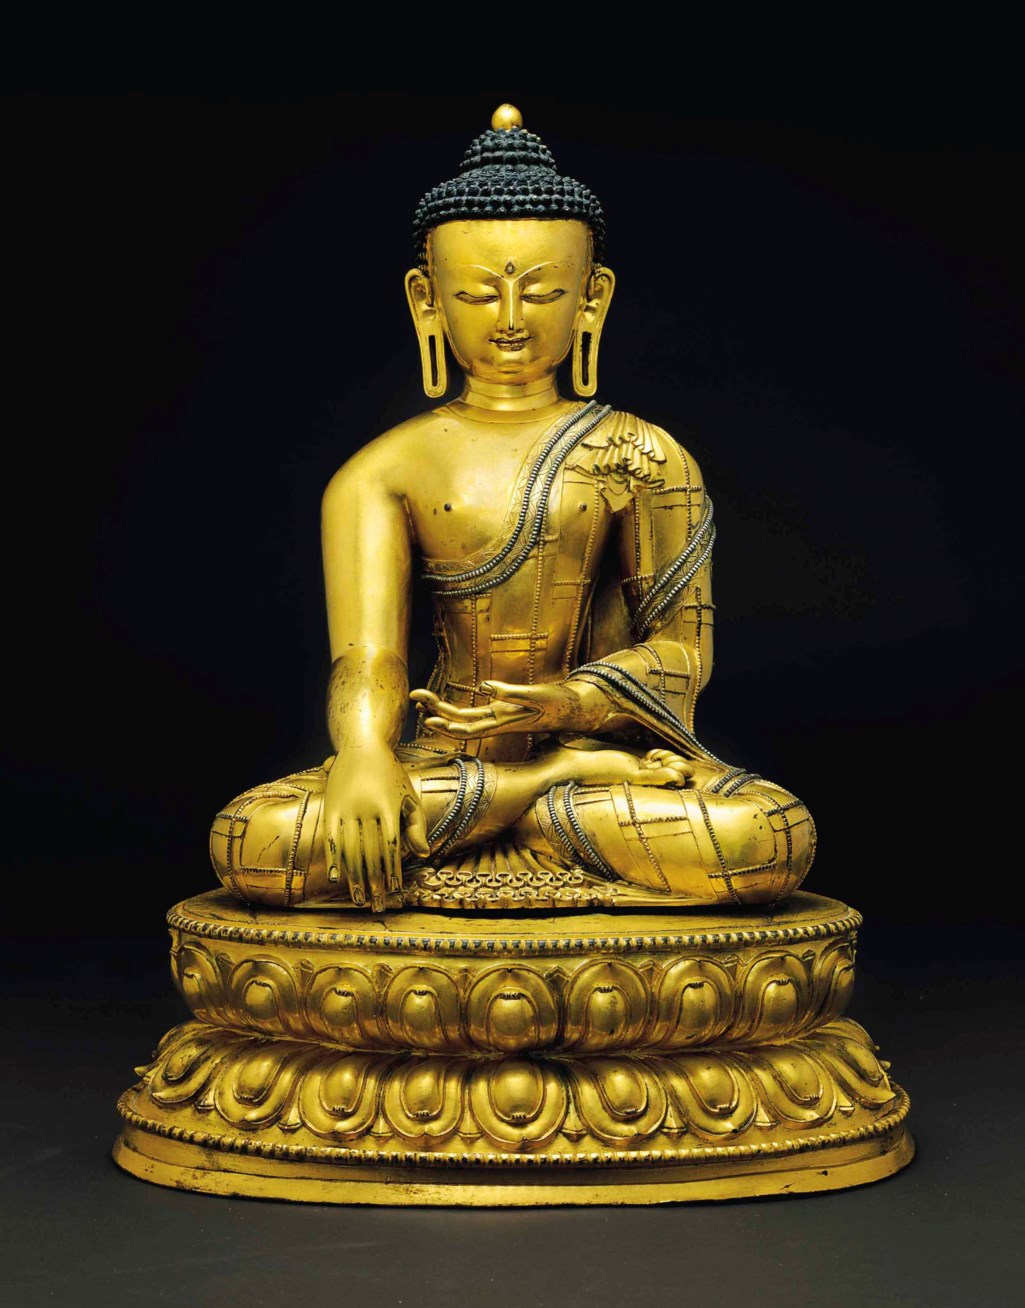 A LARGE AND IMPORTANT SILVER-INLAID GILT BRONZE FIGURE OF BUDDHA SHAKYAMUNI